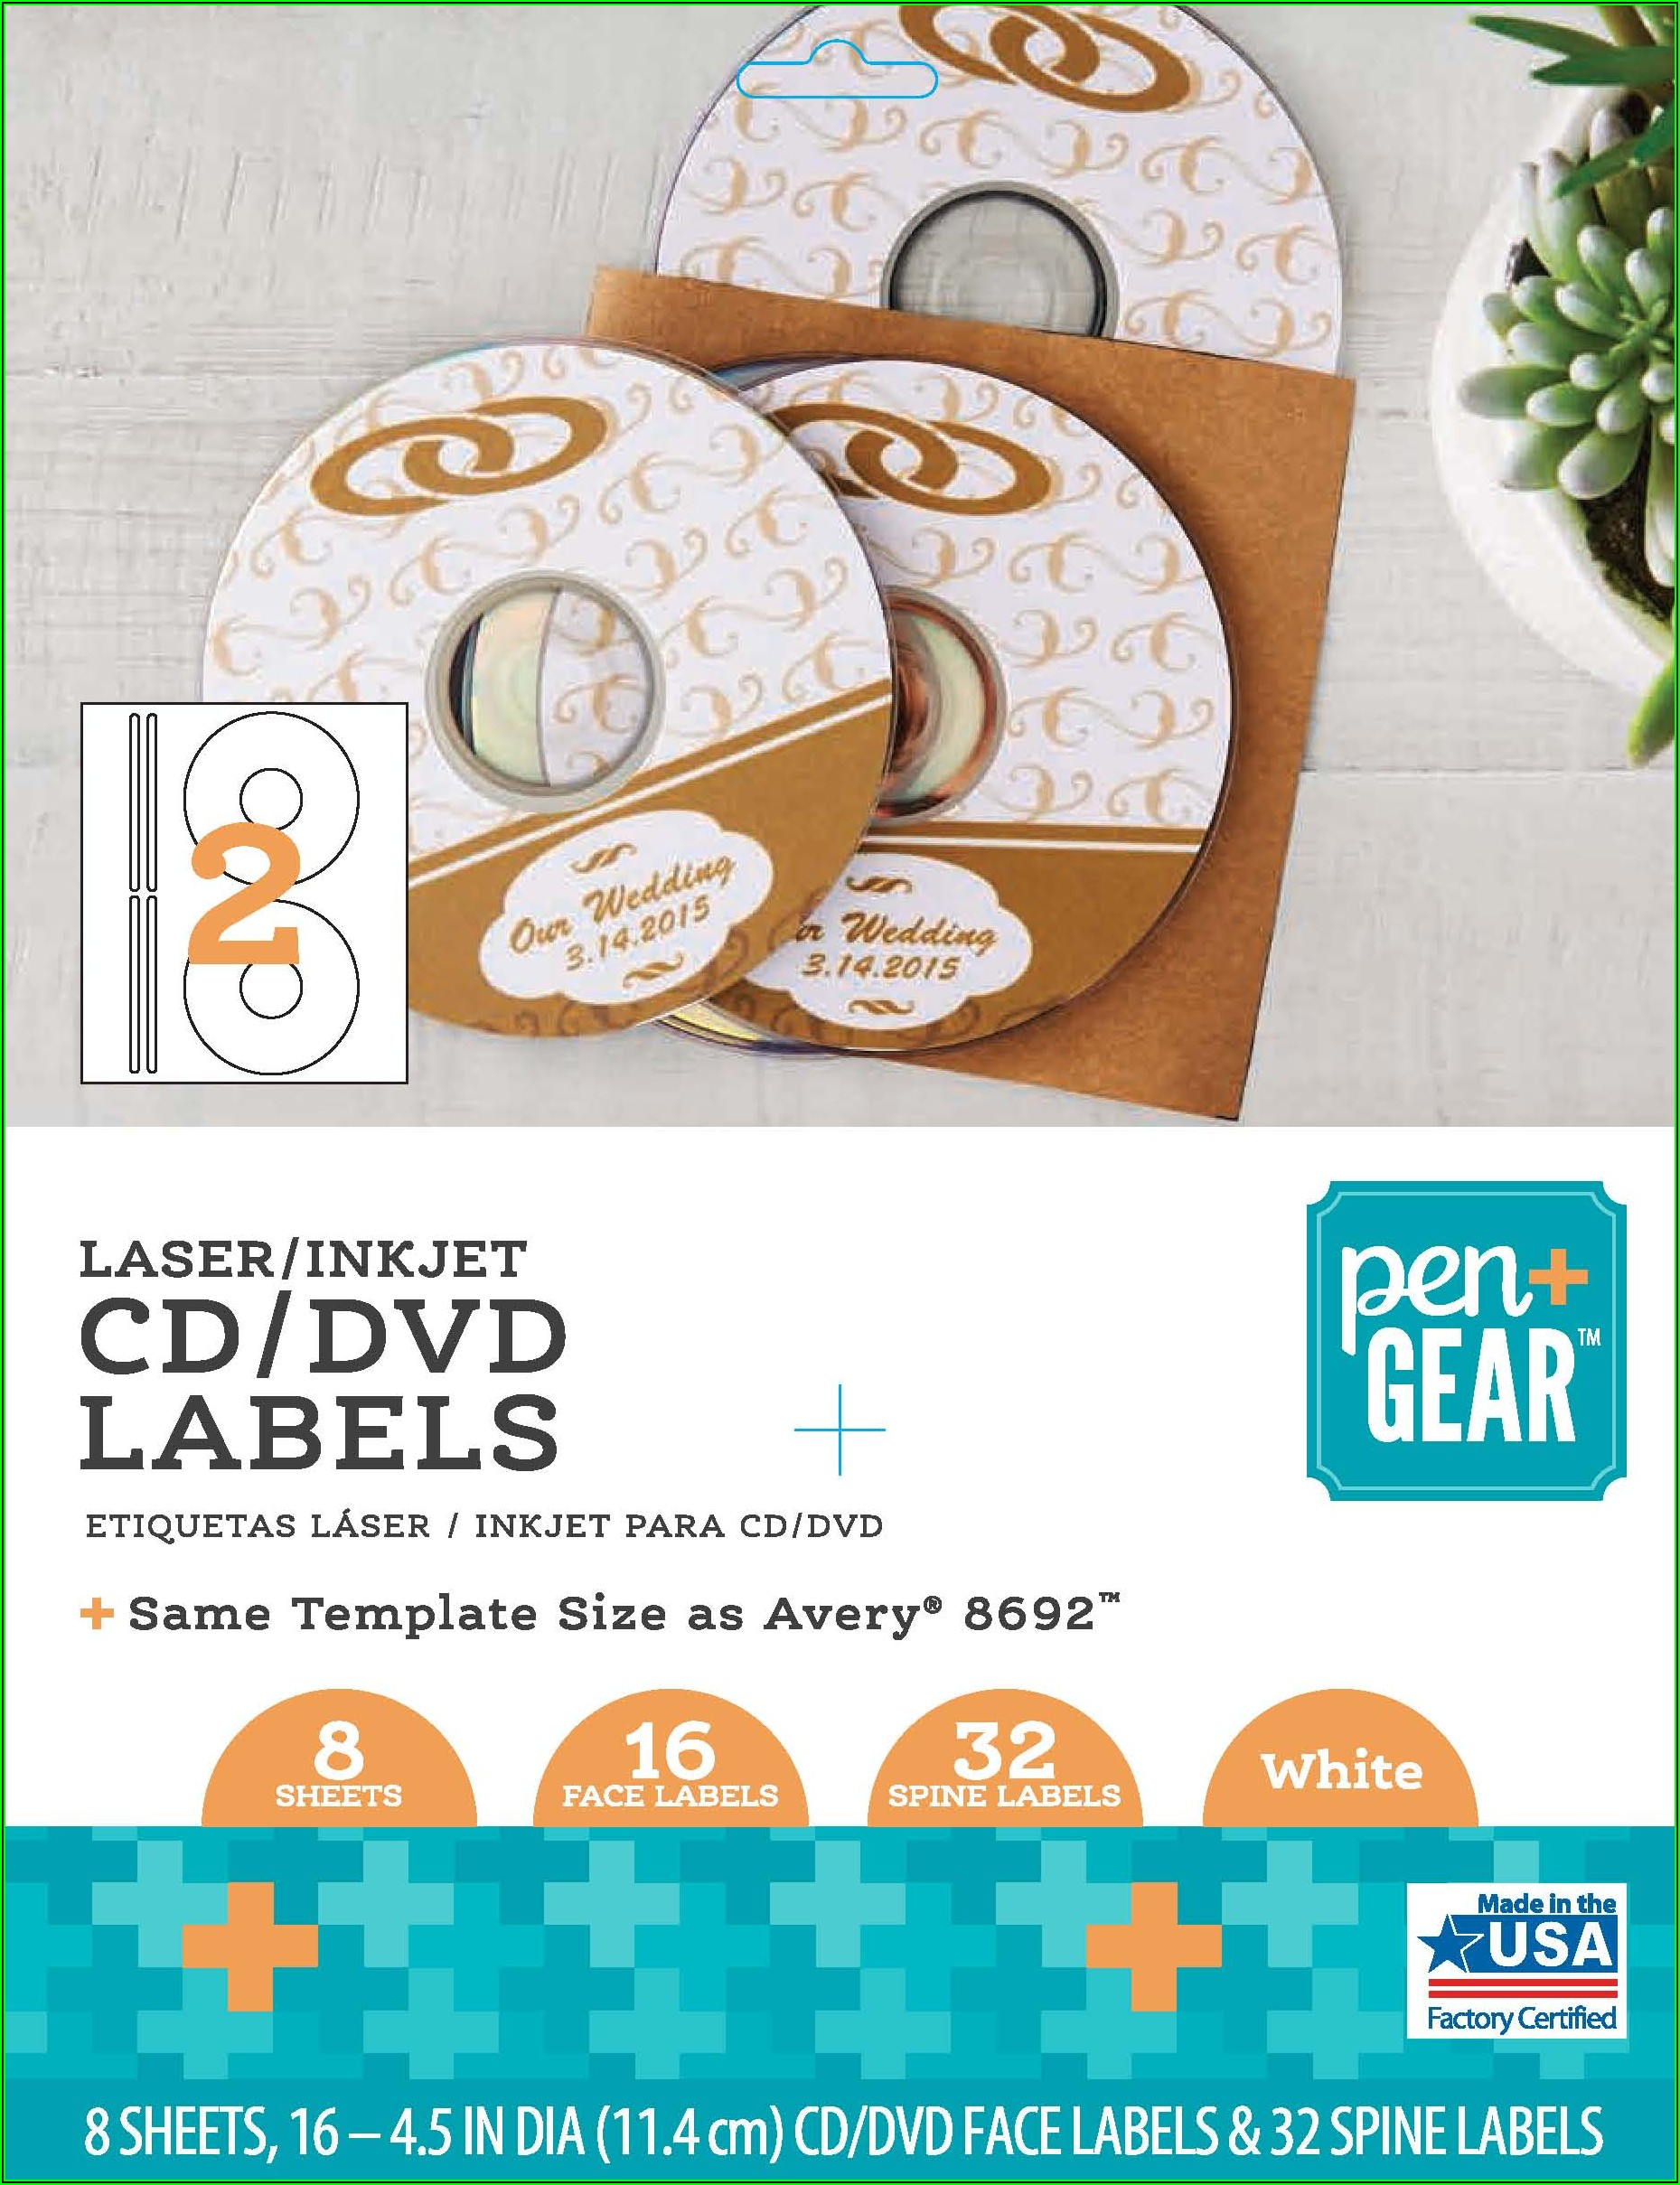 Avery Cd Label Template 8692